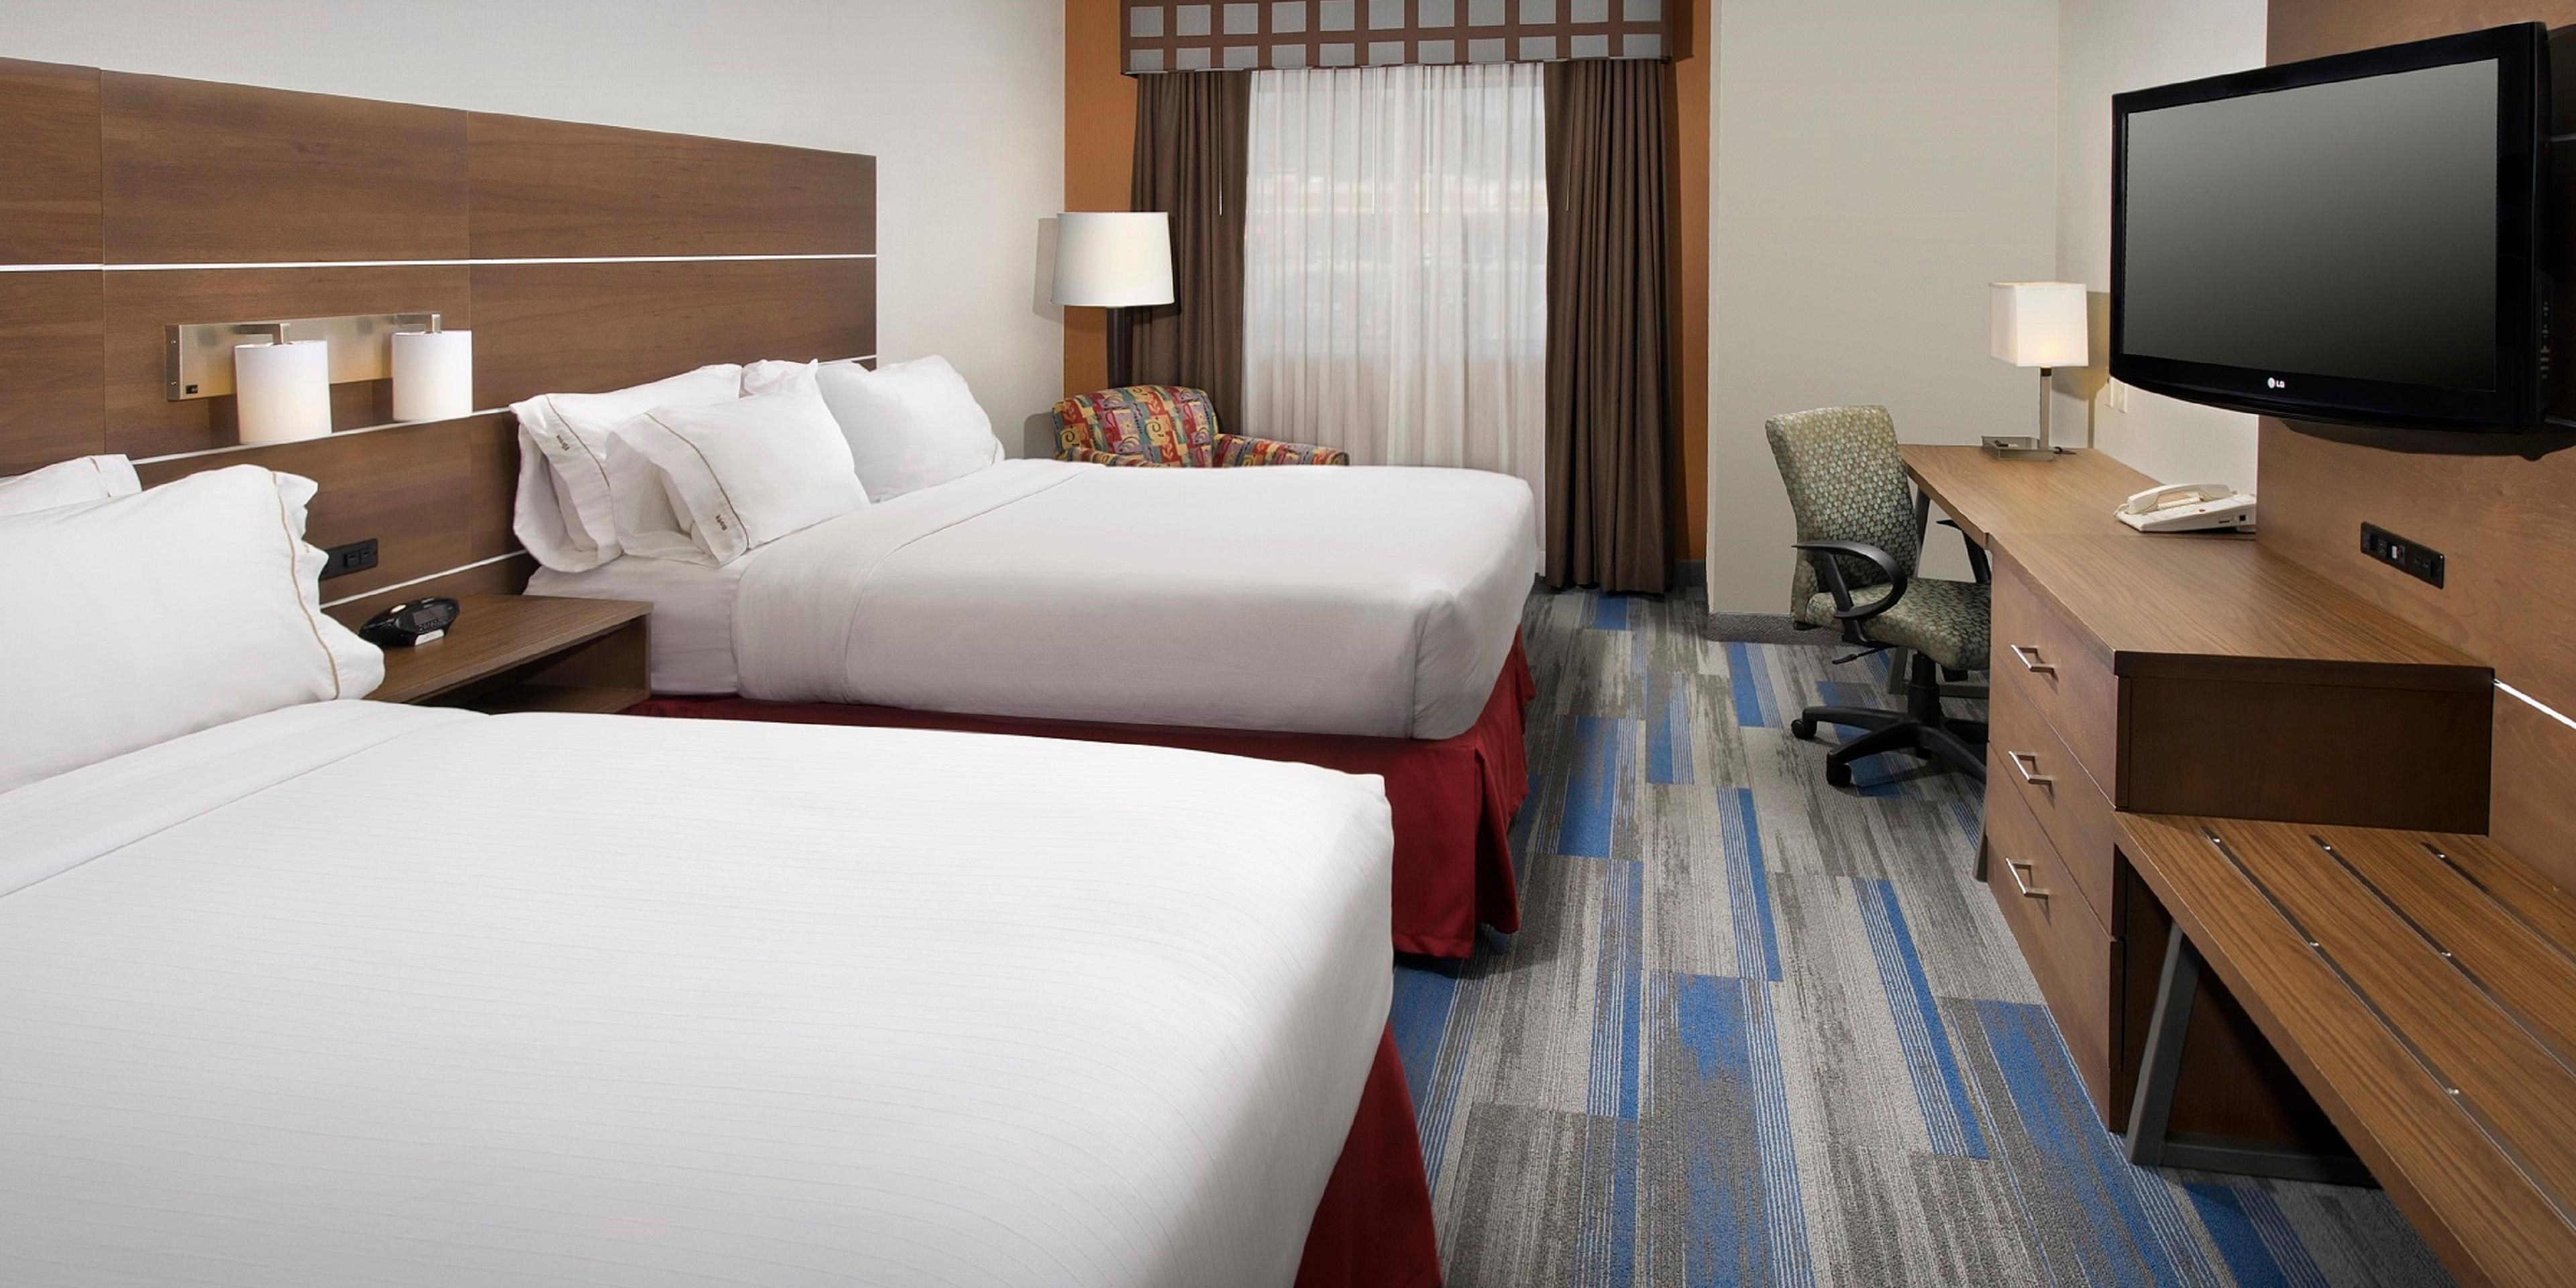 Holiday Inn Express And Suites Ruckersville 4712393566 2x1